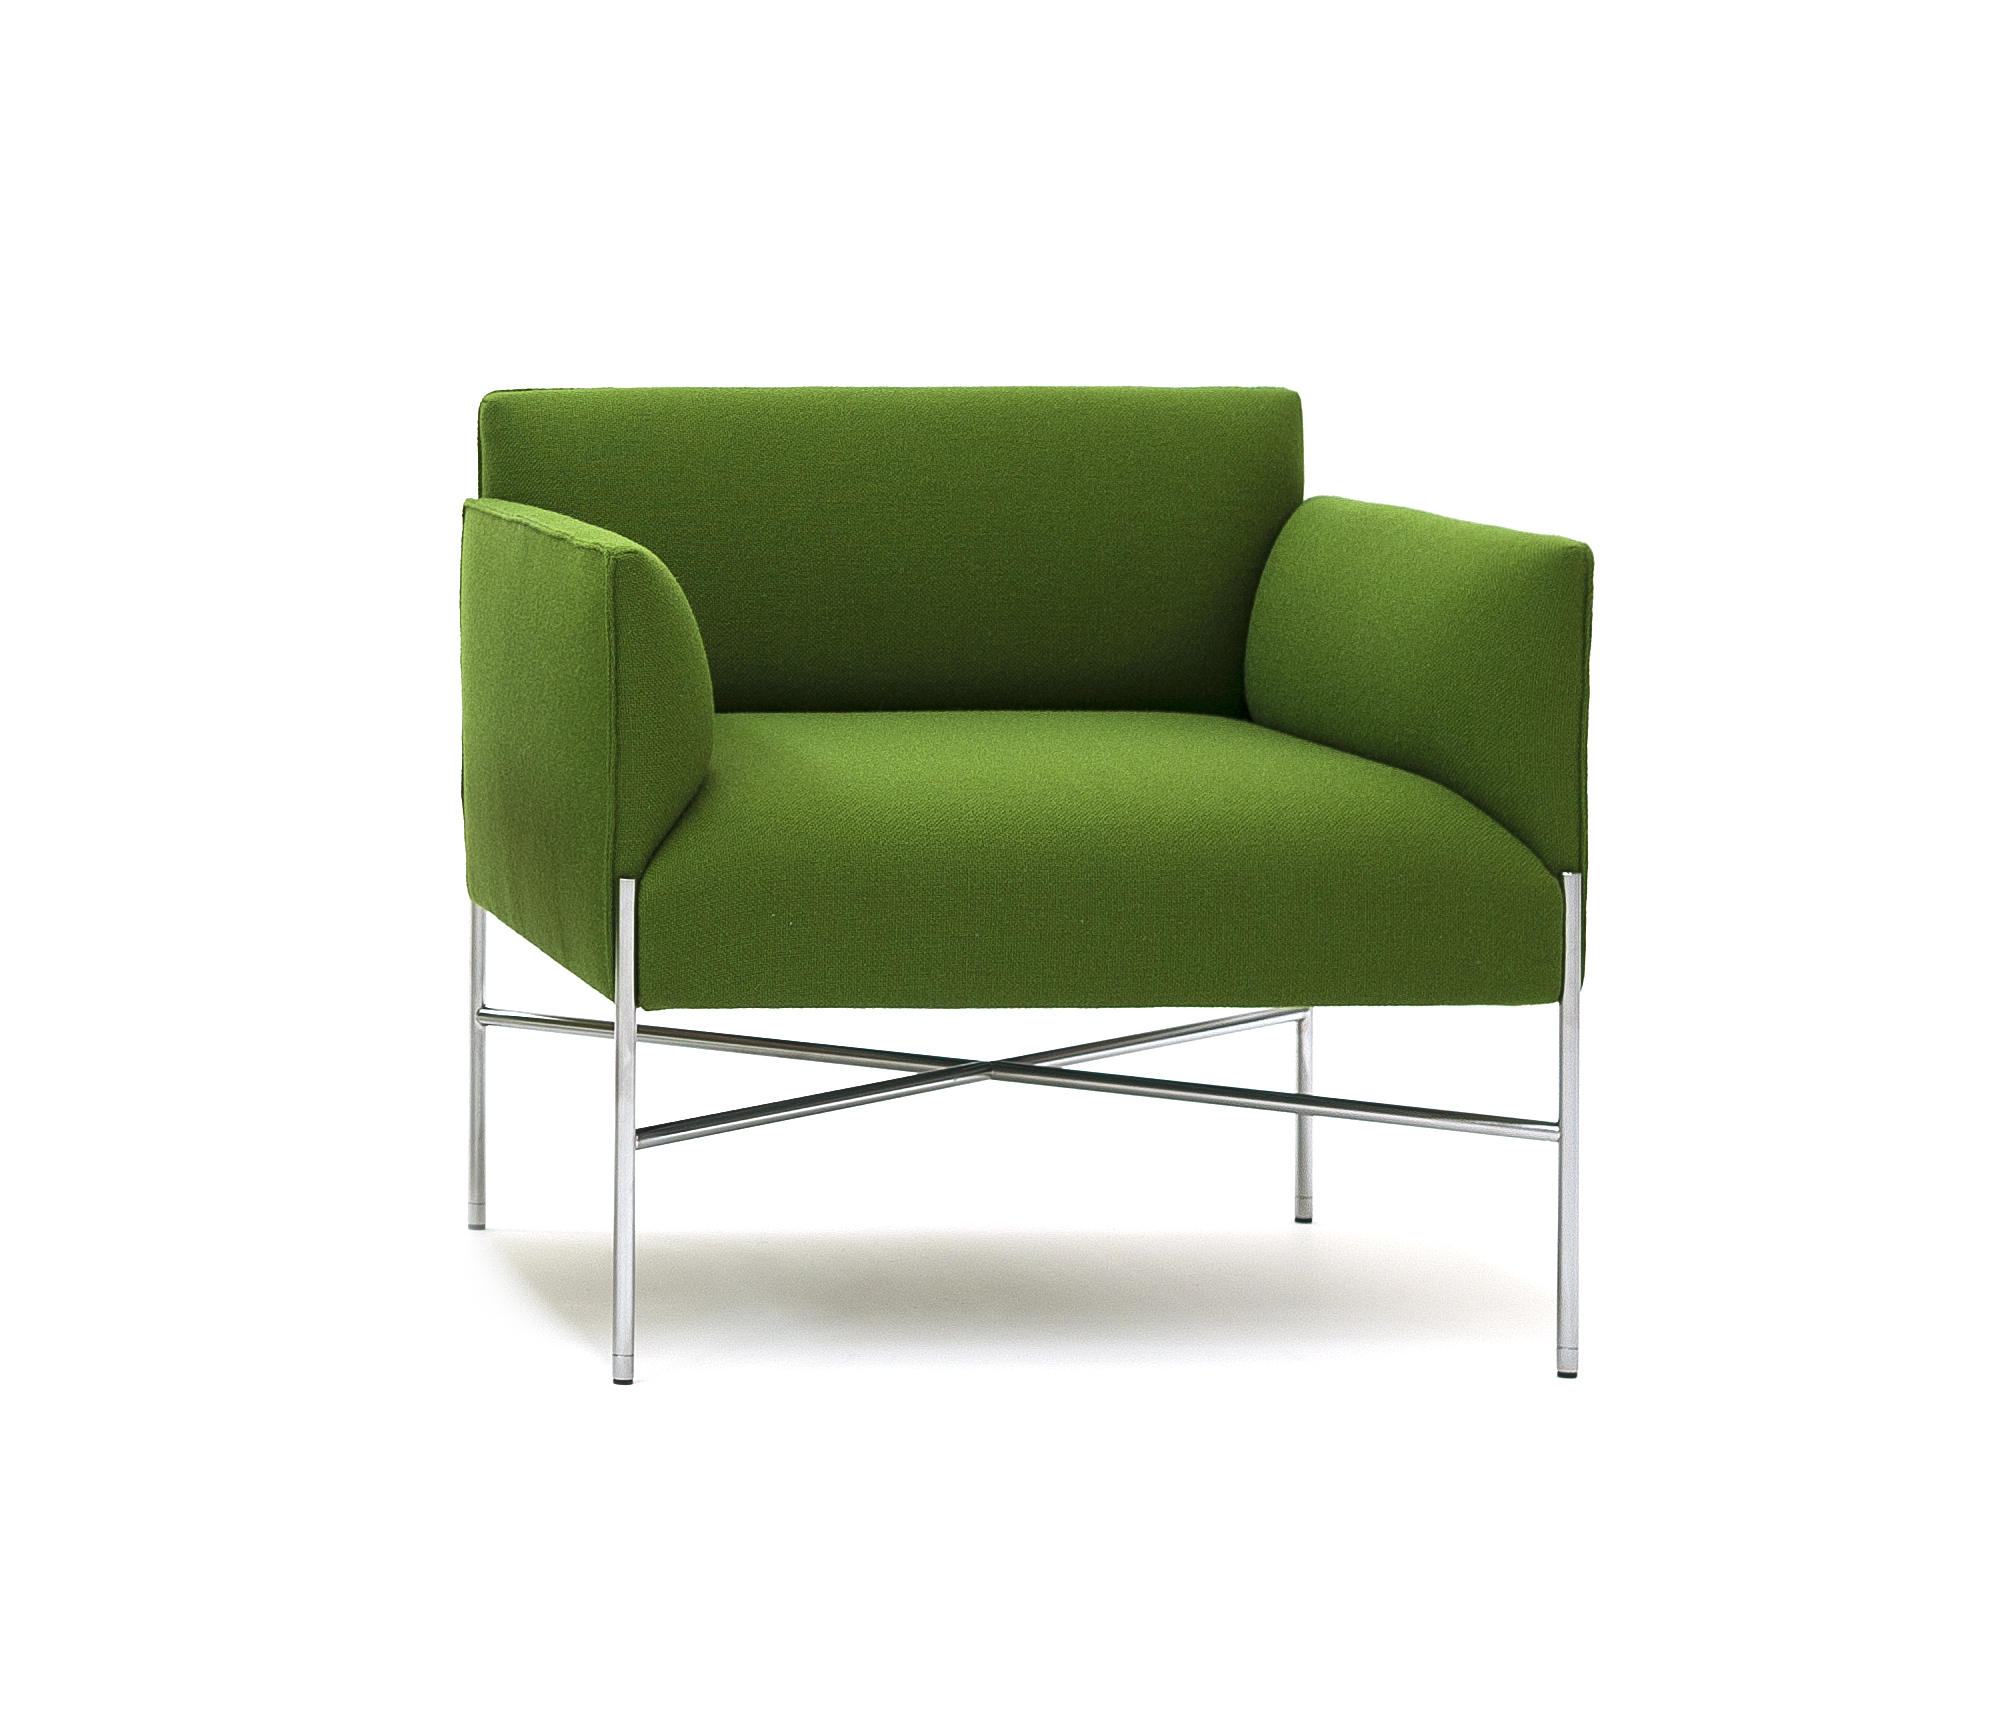 chill out chair bedroom dunelm lounge chairs from tacchini italia architonic